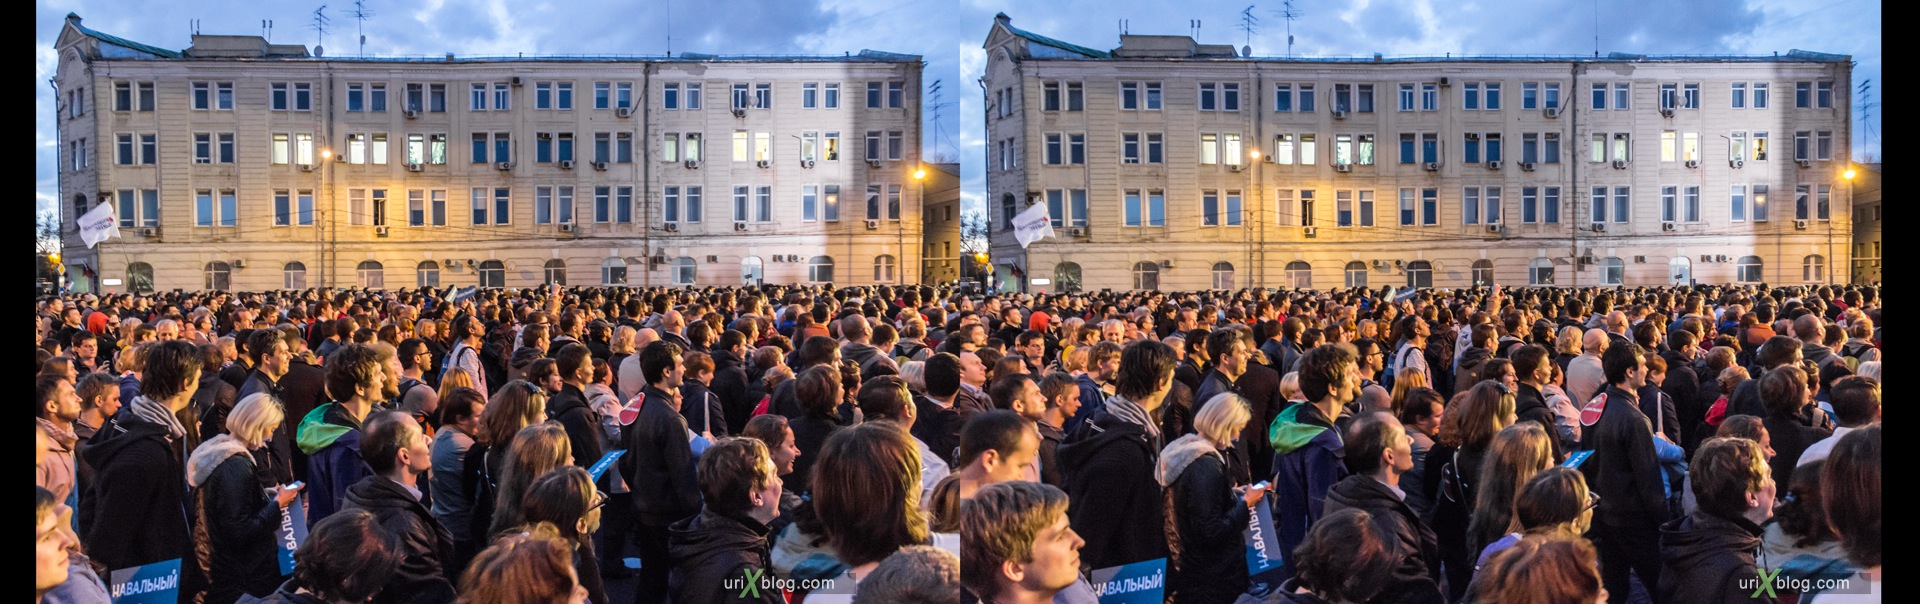 2013, Russia, Moscow, meeting, rally, elections, Aleksei Navalny, people, 3D, stereo pair, cross-eyed, crossview, cross view stereo pair, stereoscopic